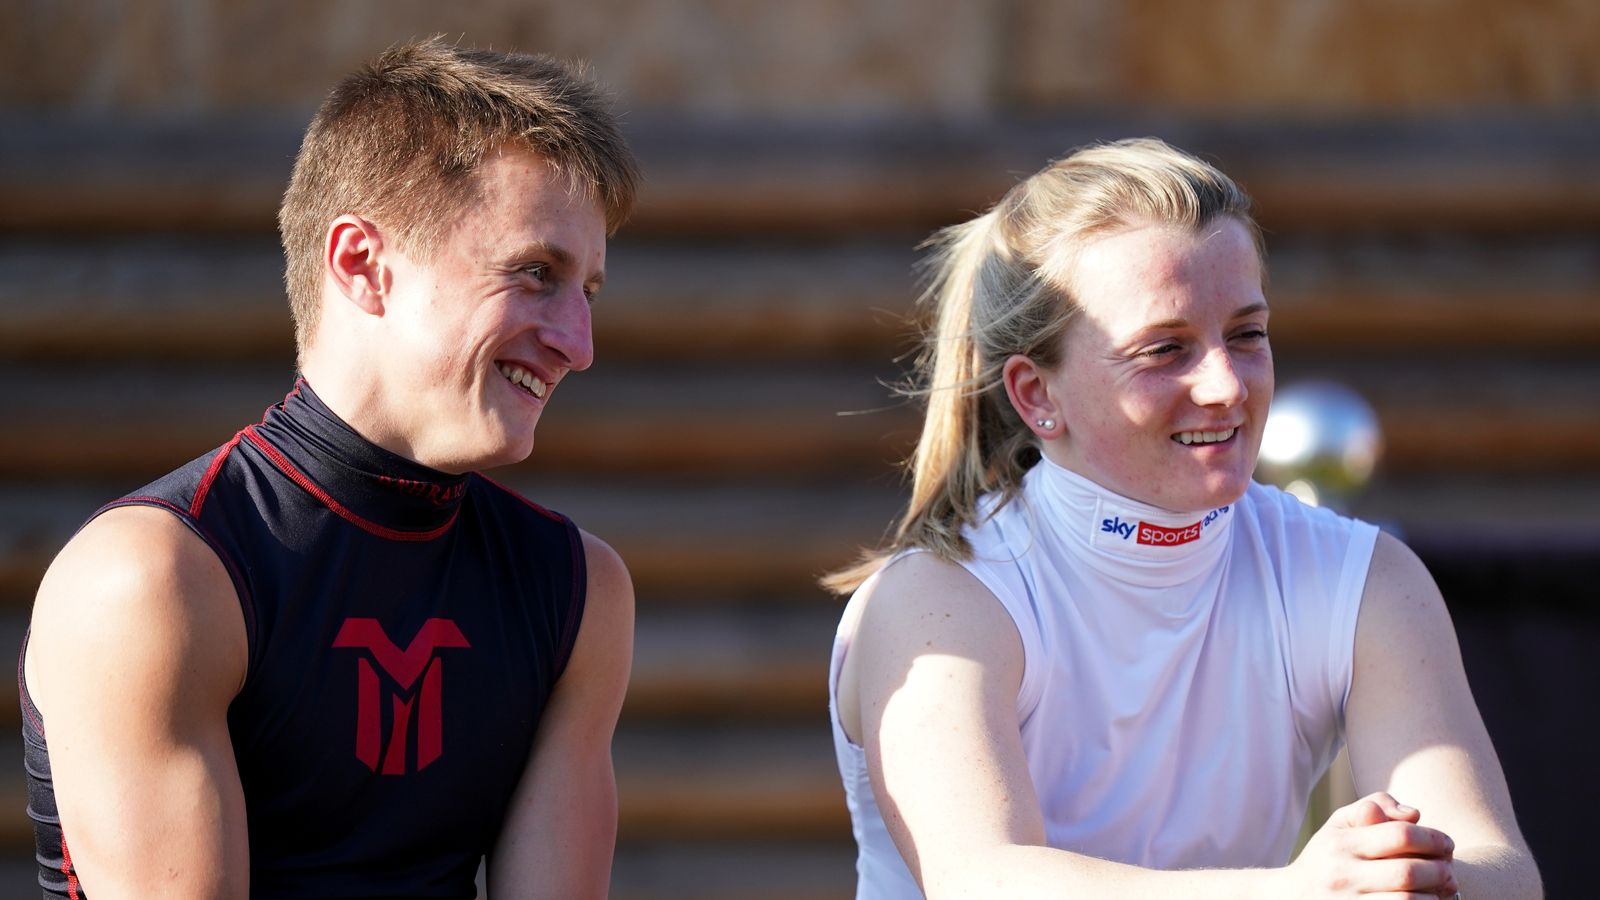 Cazoo St Leger: Hollie Doyle excited for Doncaster Classic debut on Aidan O'Brien hope Interpretation